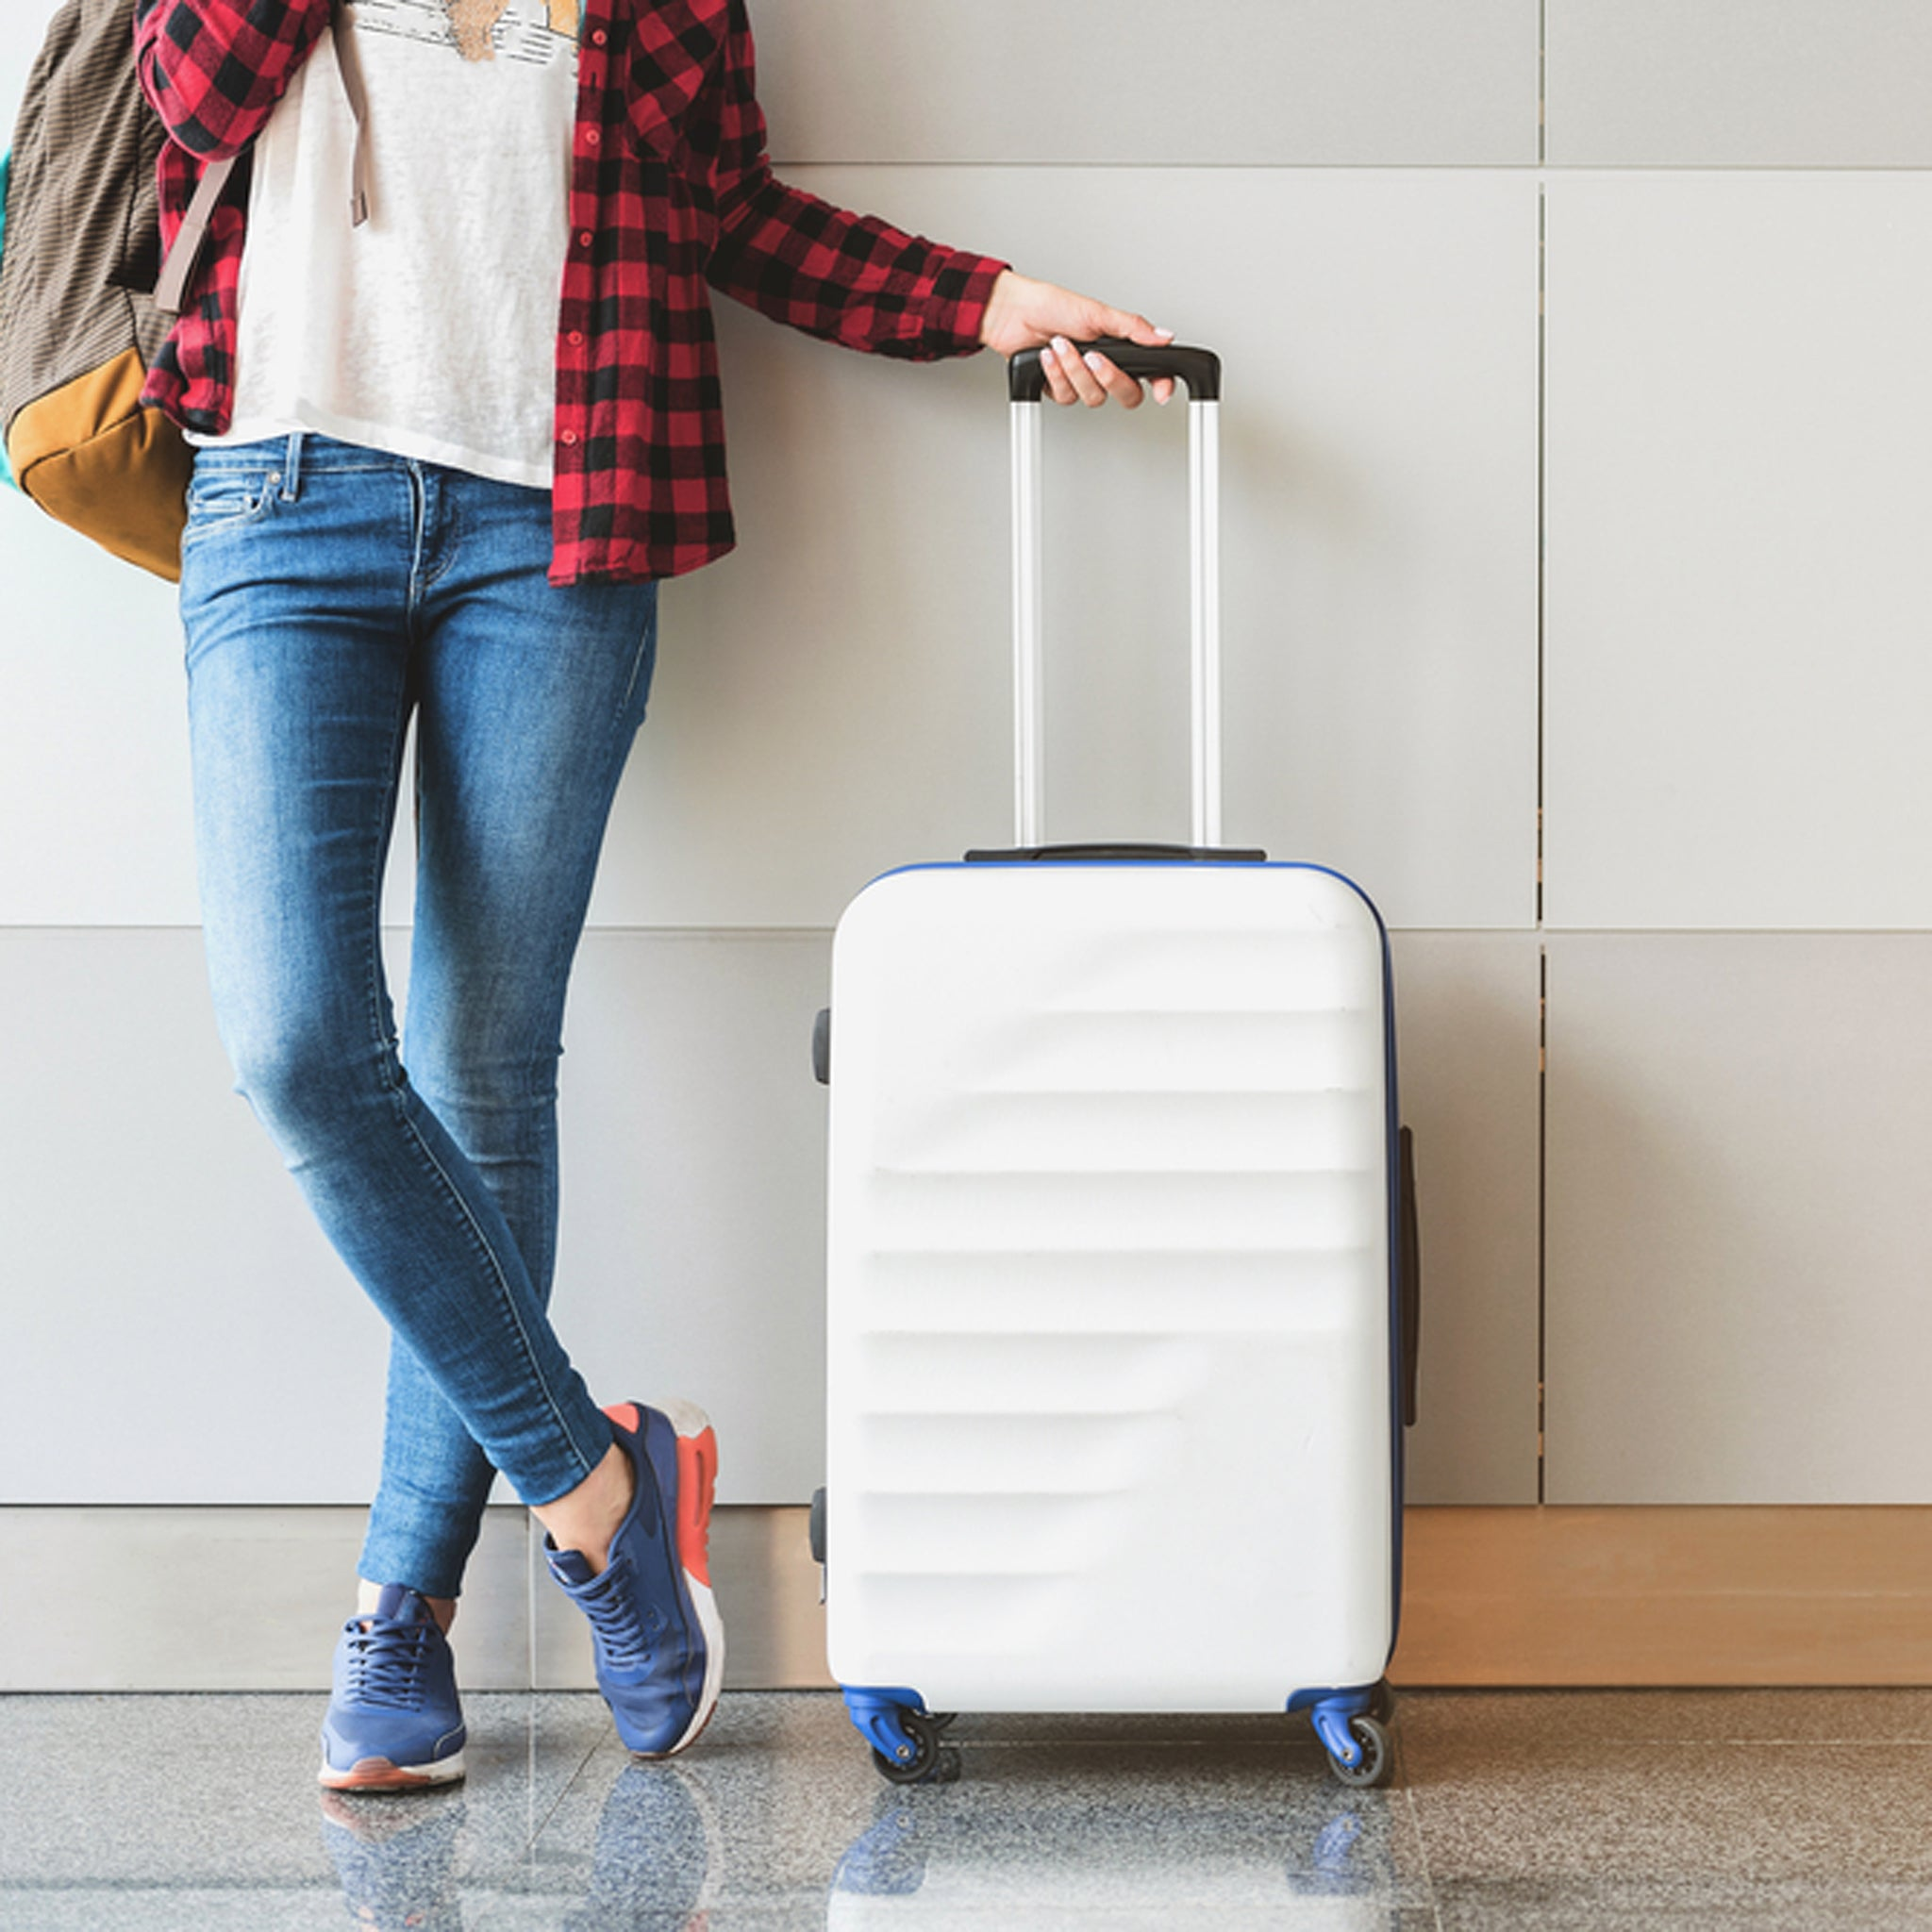 Luggage and Travel Gear | Kipe it